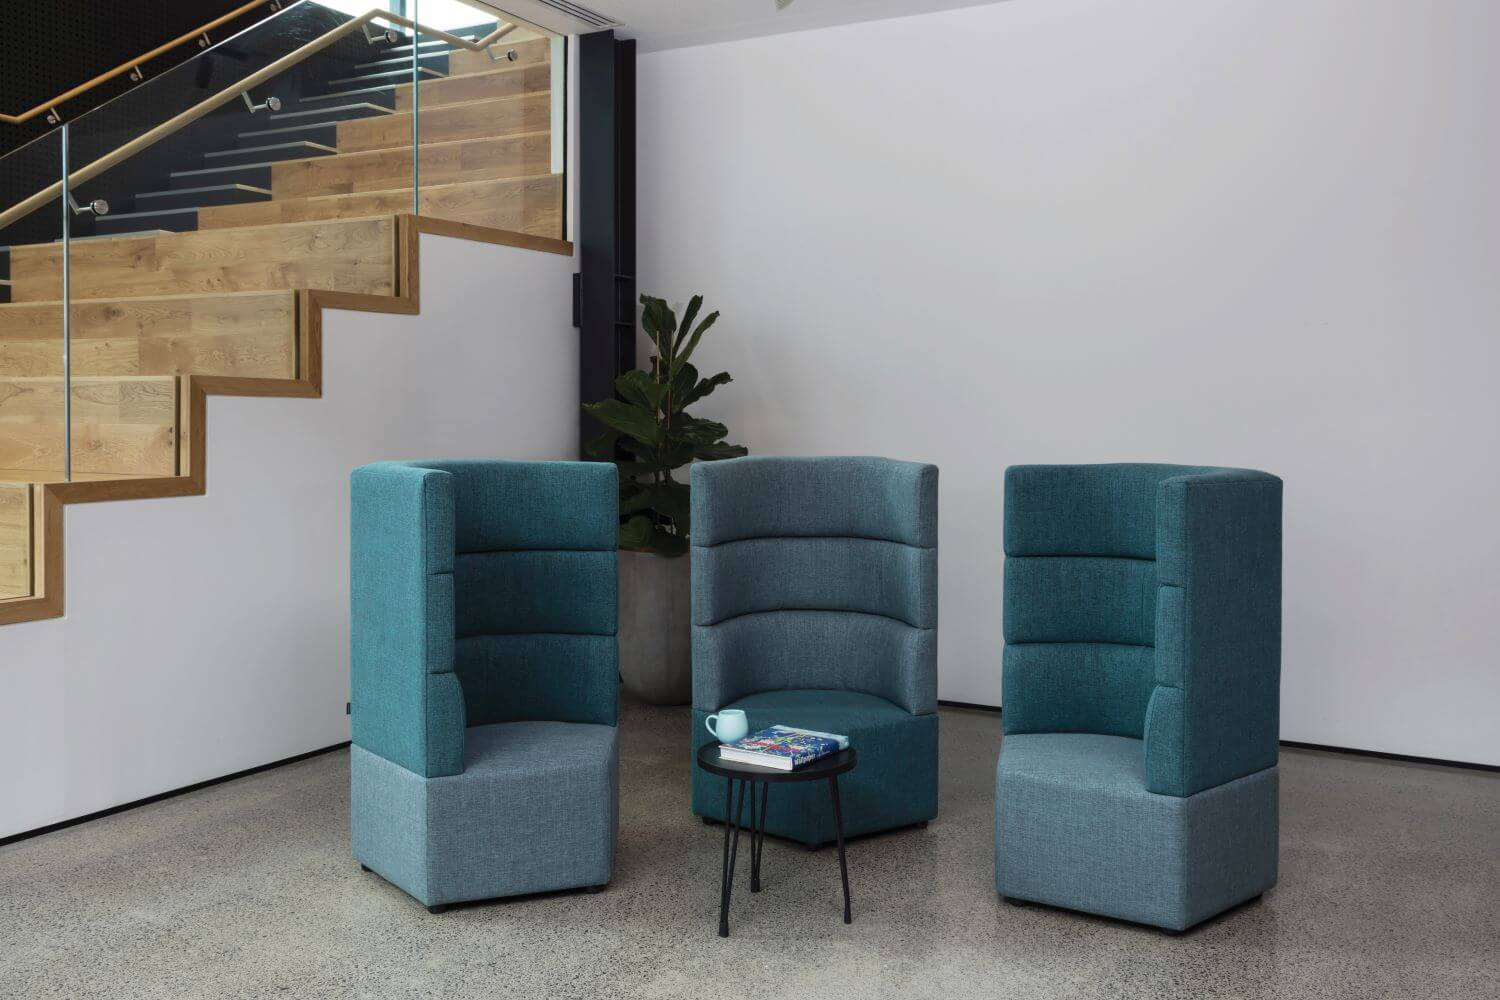 Star series collaborative seating, three high back arranged around a table